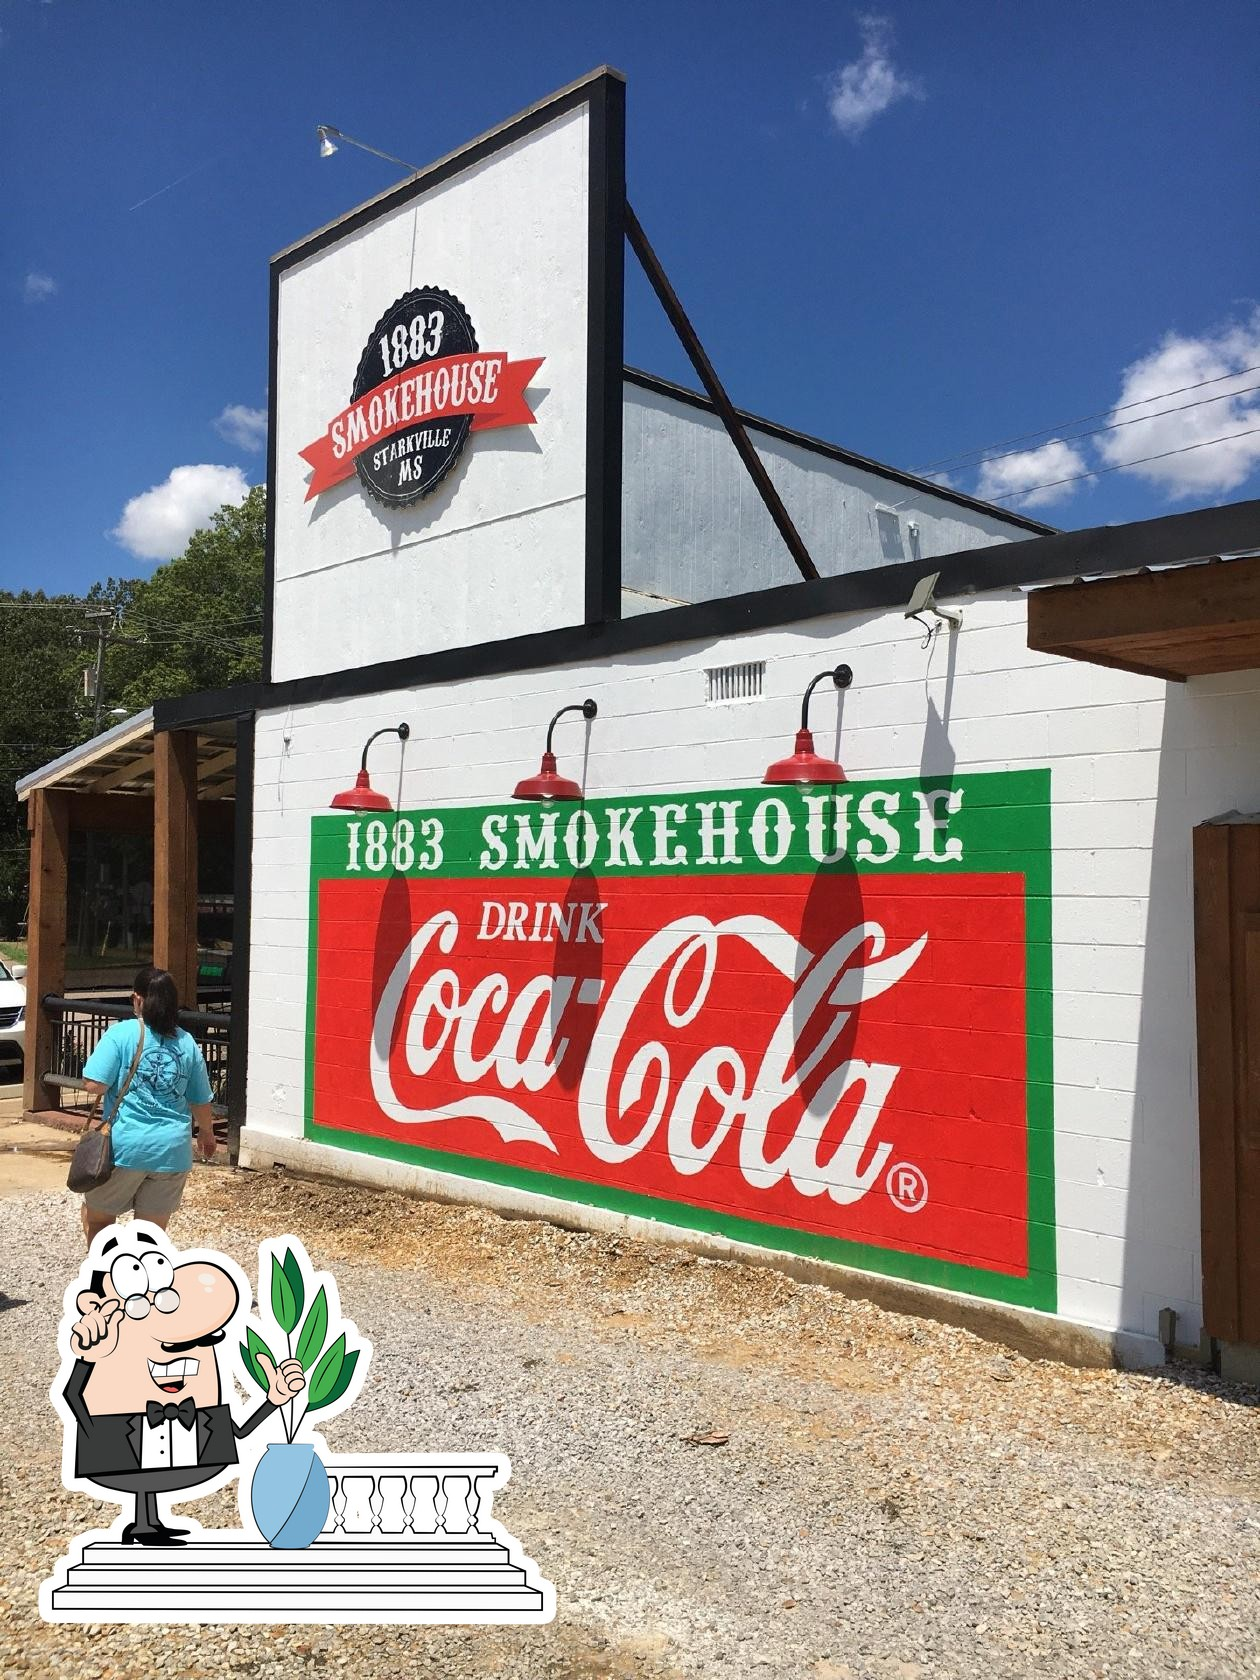 The exterior is an important feature of 1883 Smokehouse